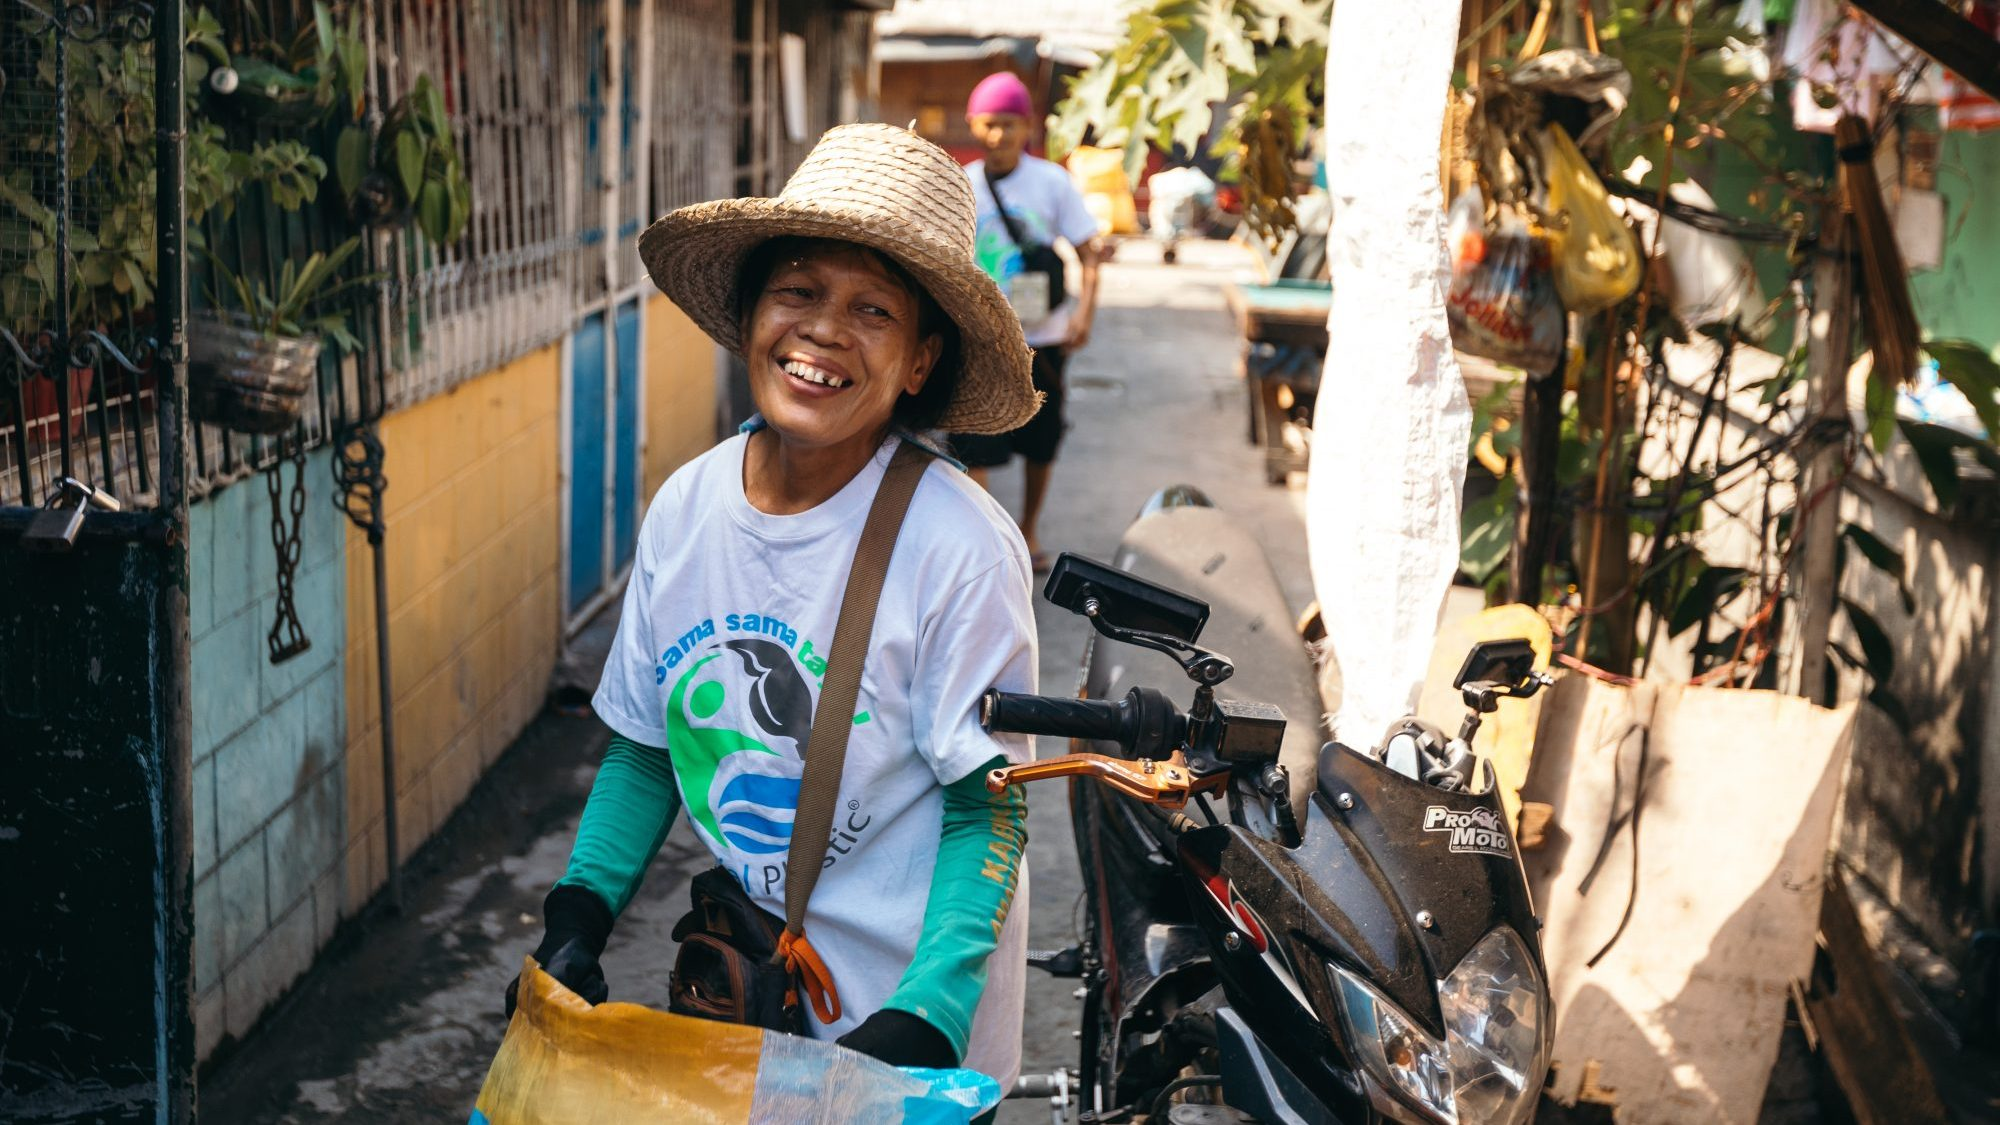 Image: Woman carrying bags of plastic in the Philippines and smiling